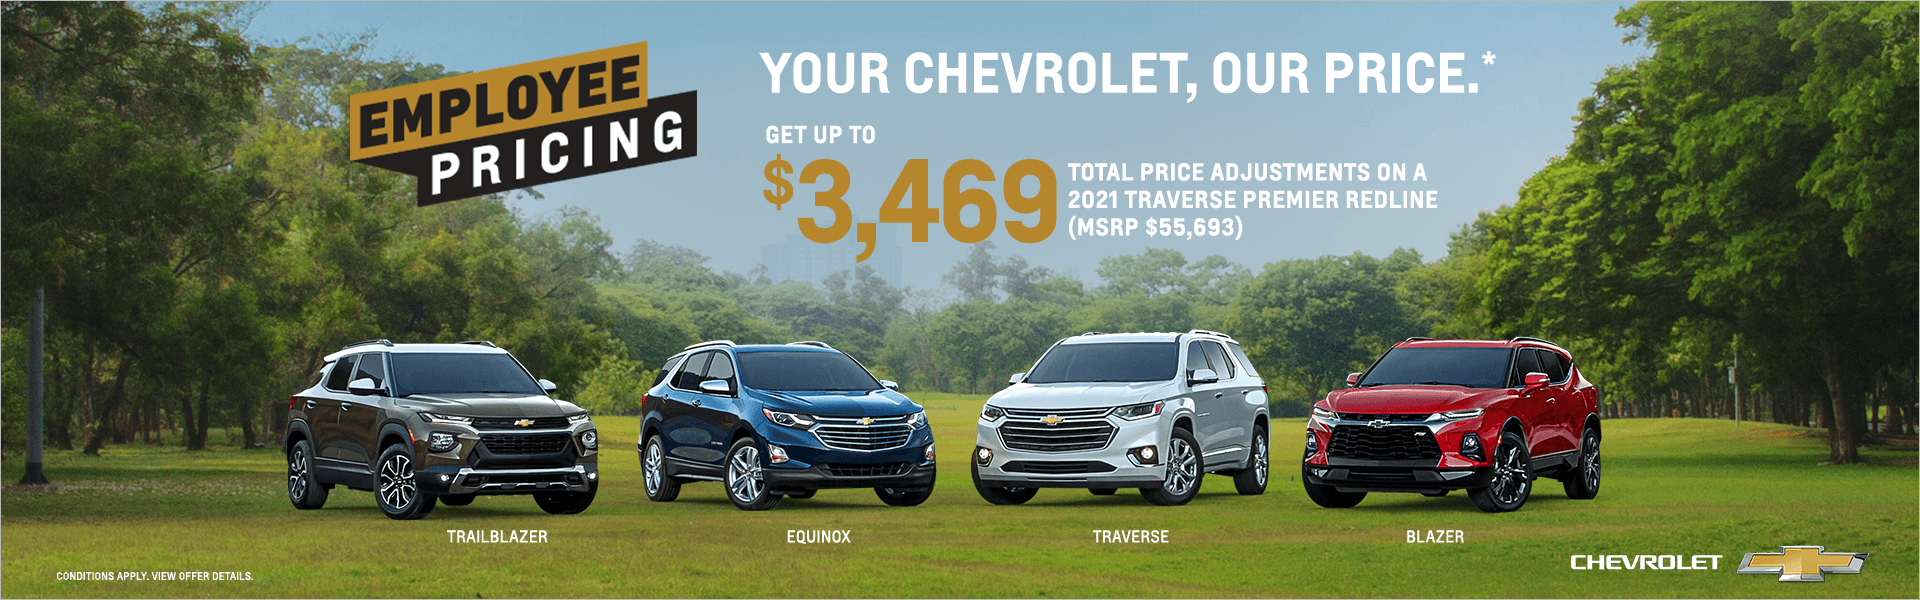 Your Chevrolet, our price